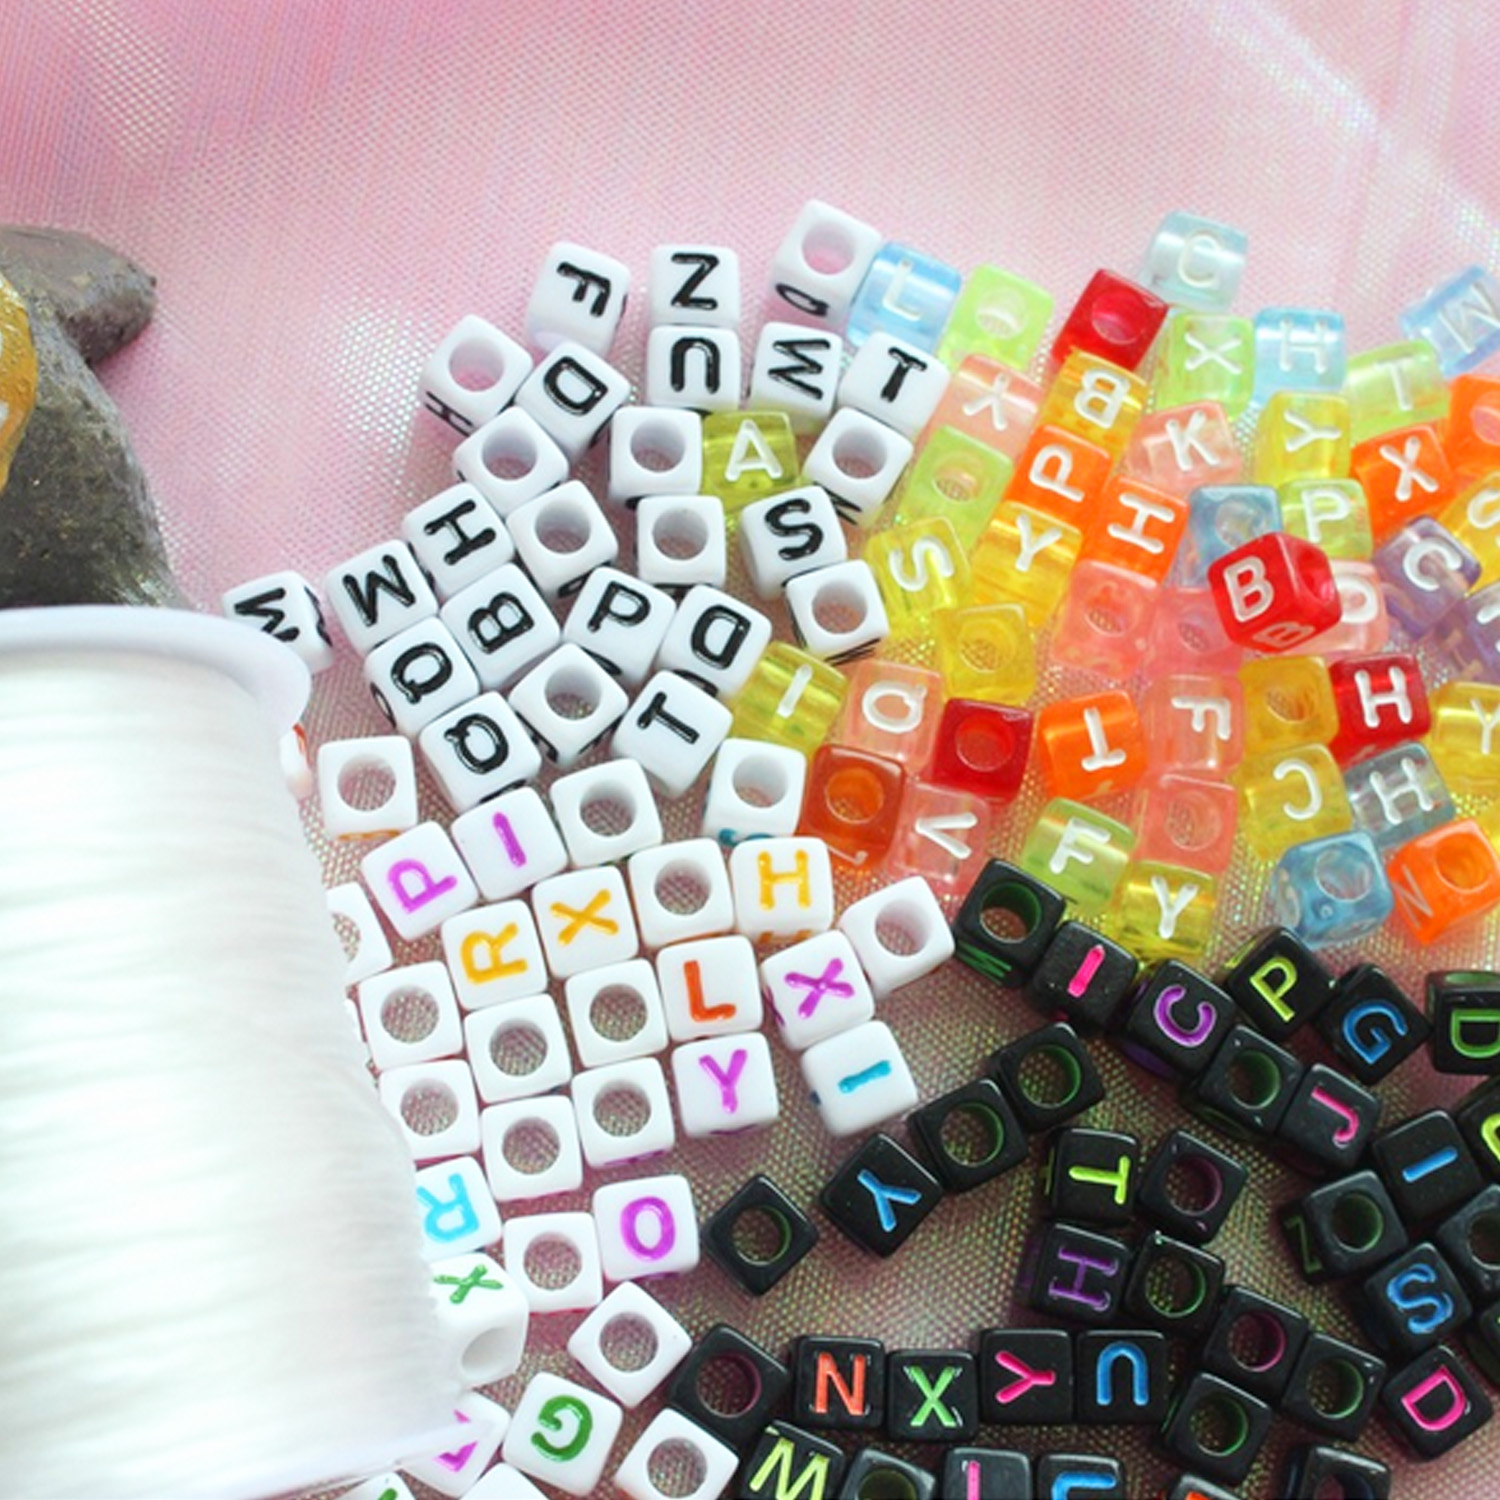 800Pcs 6mm Assorted Style Acrylic Cube Alphabet Letter Loose Beads Fashion DIY Toys Kids Gifts Bracelets Manual Art Craft Making